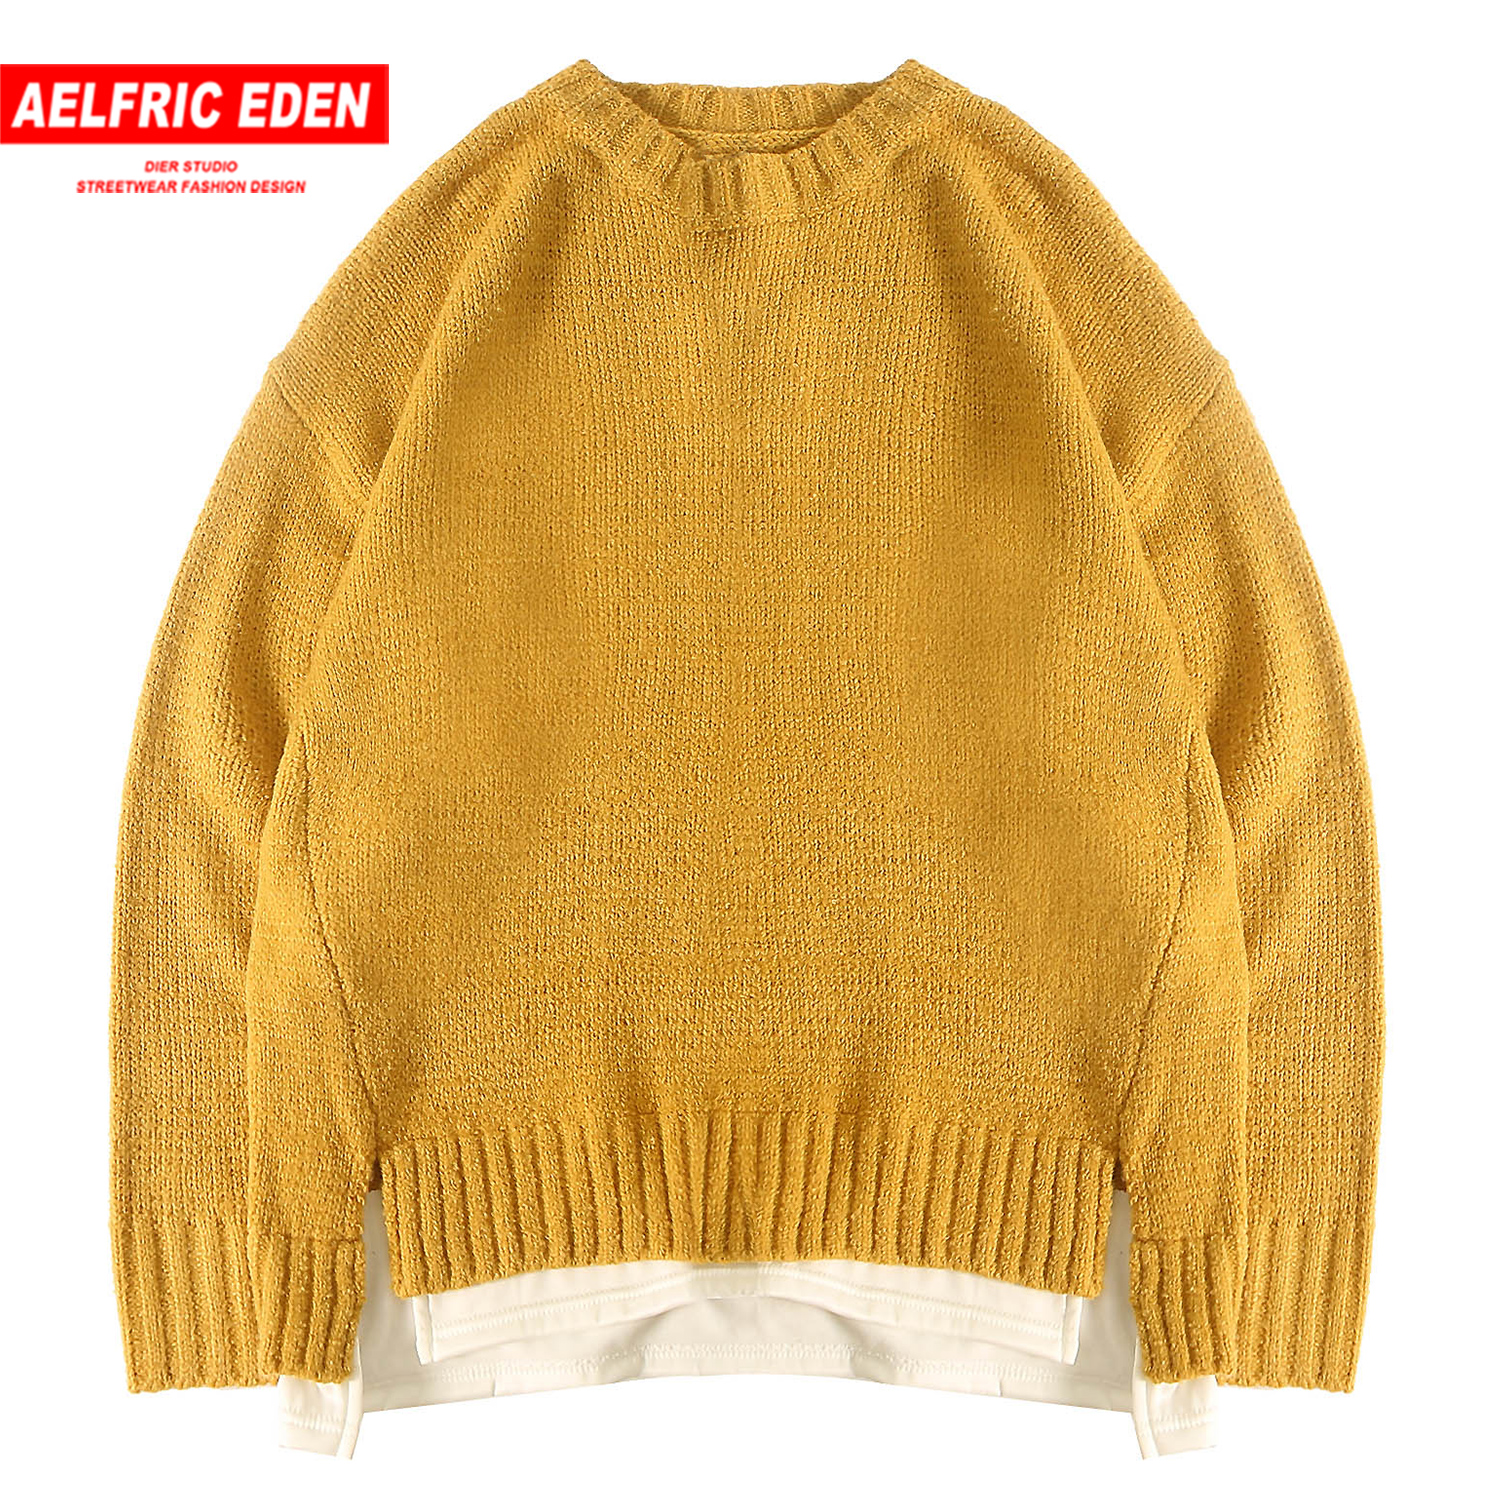 Aelfric Eden Patchwork Solid Knitwear Men Sweaters 2019 Harajuku Fashion Hip Hop Male Pullovers Casual Streetwear Oversized Tops